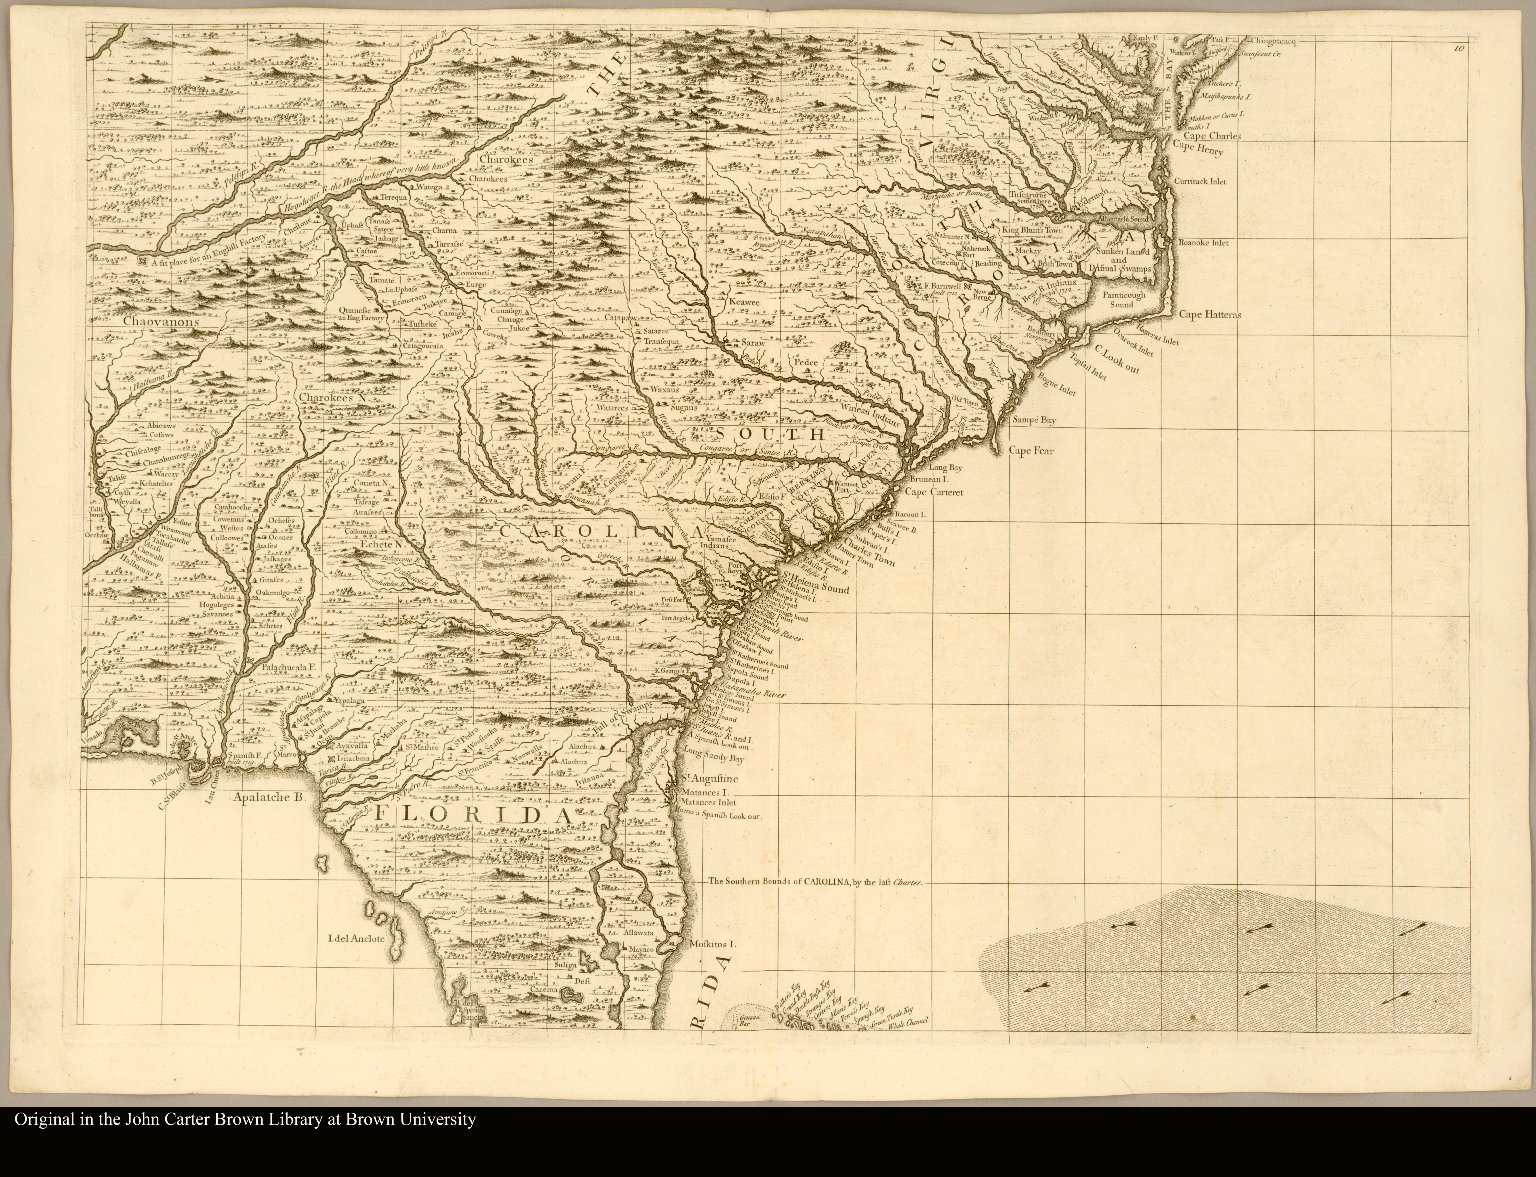 [Southeastern North America showing the coast from Virginia to Florida]